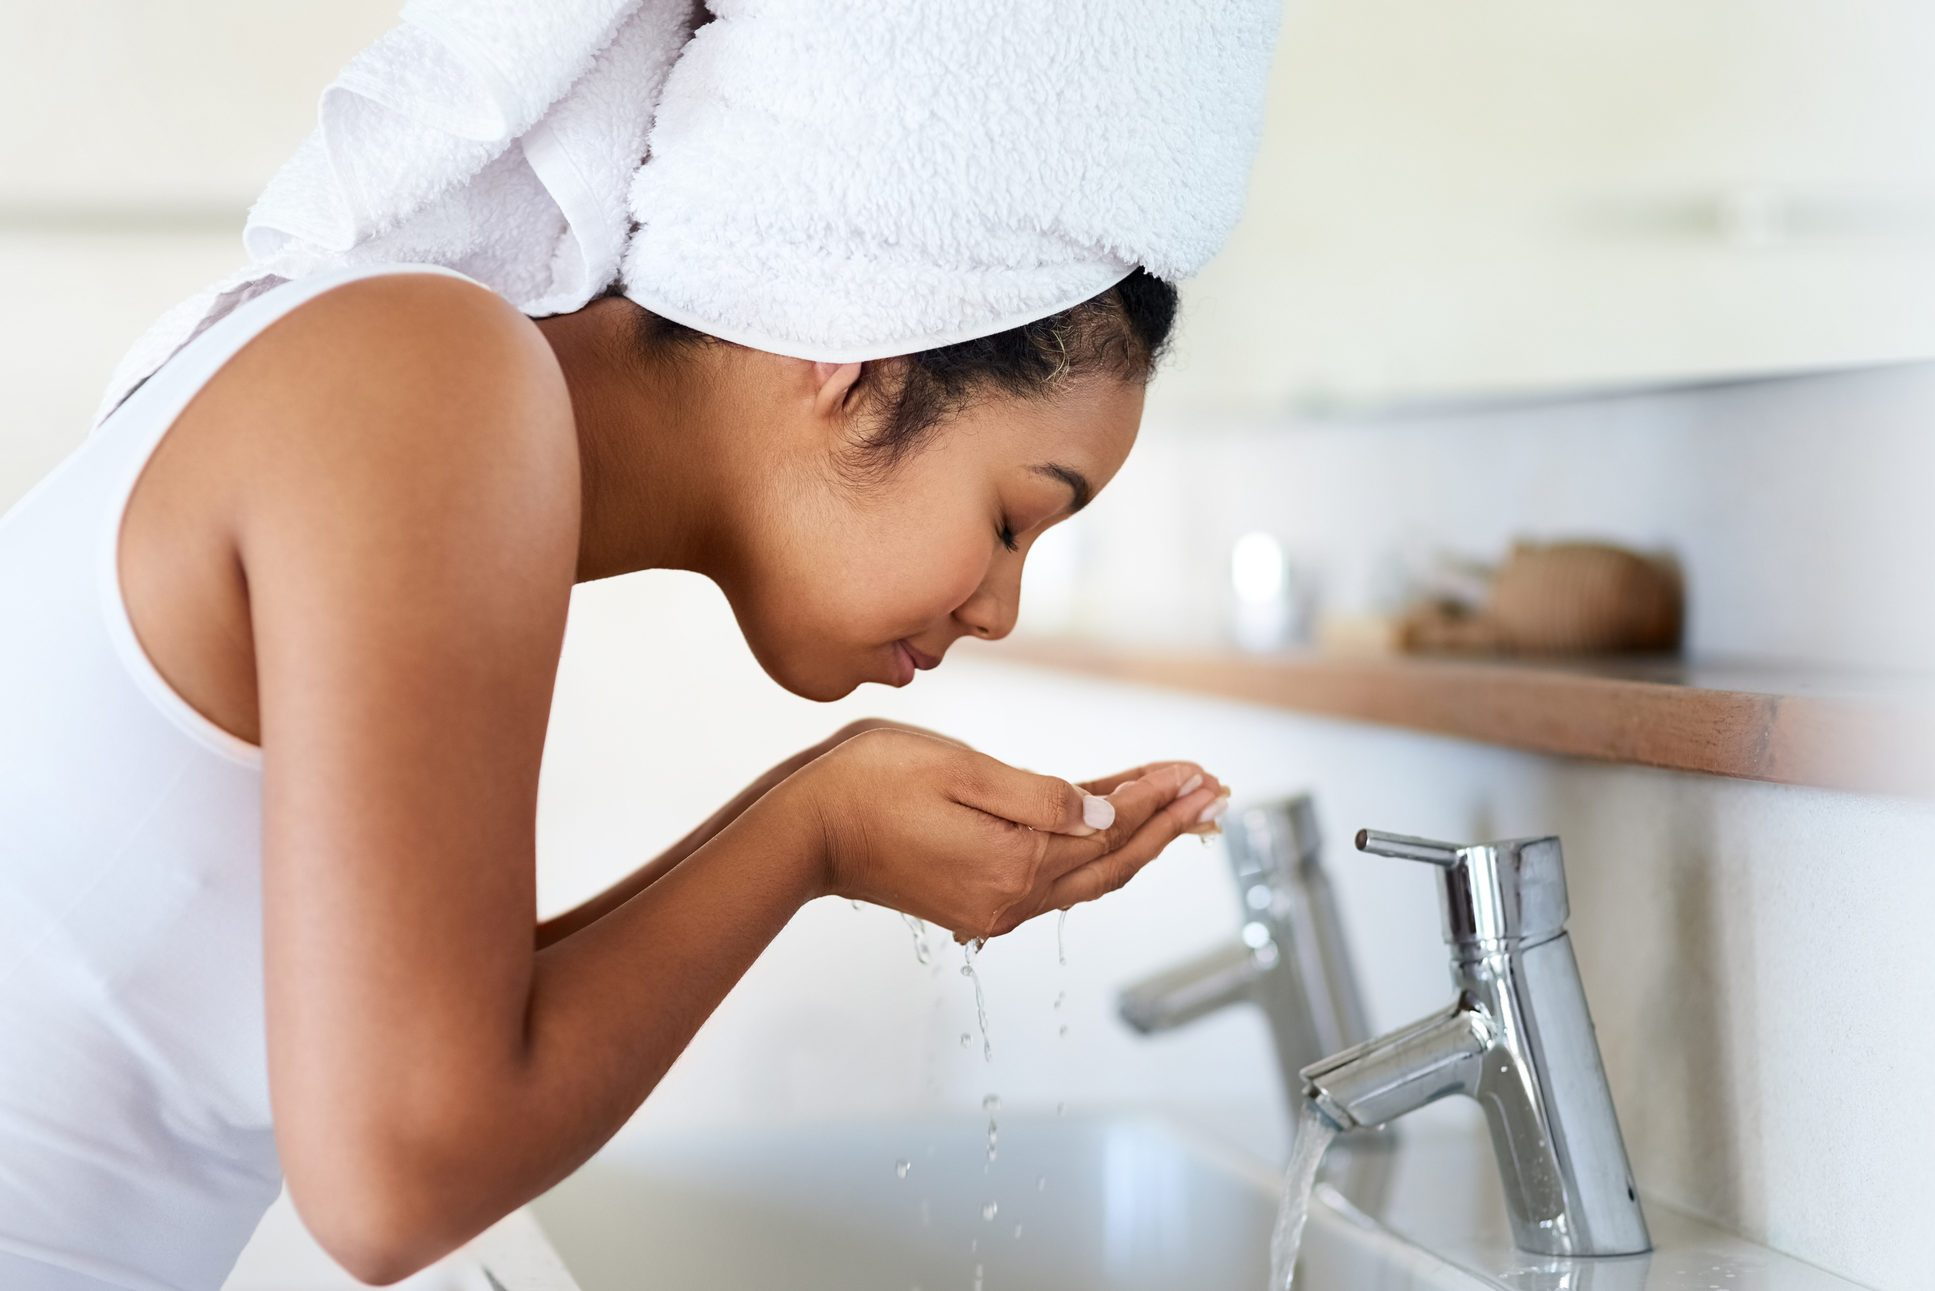 woman washing her face after taking a shower